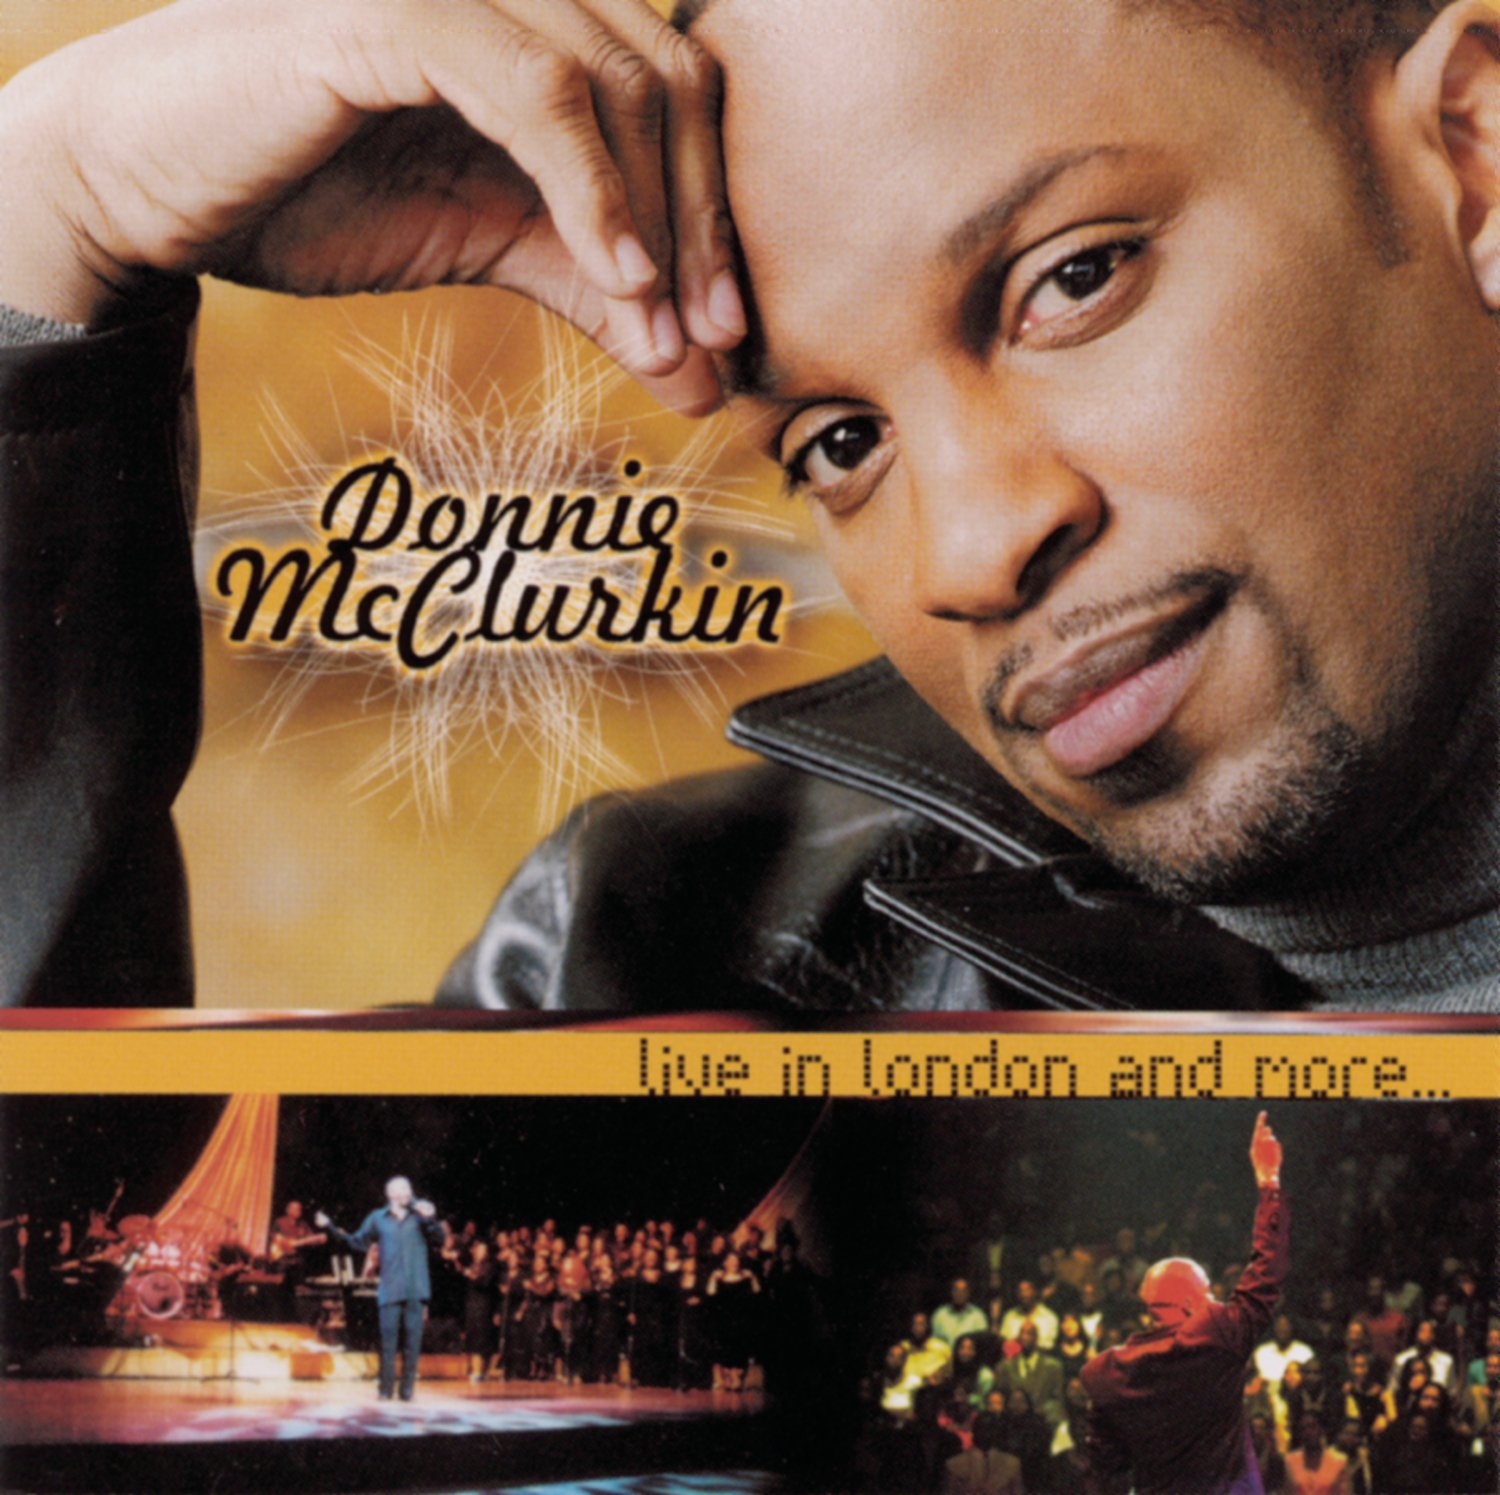 Live in London and More .. by MCCLURKIN,DONNIE